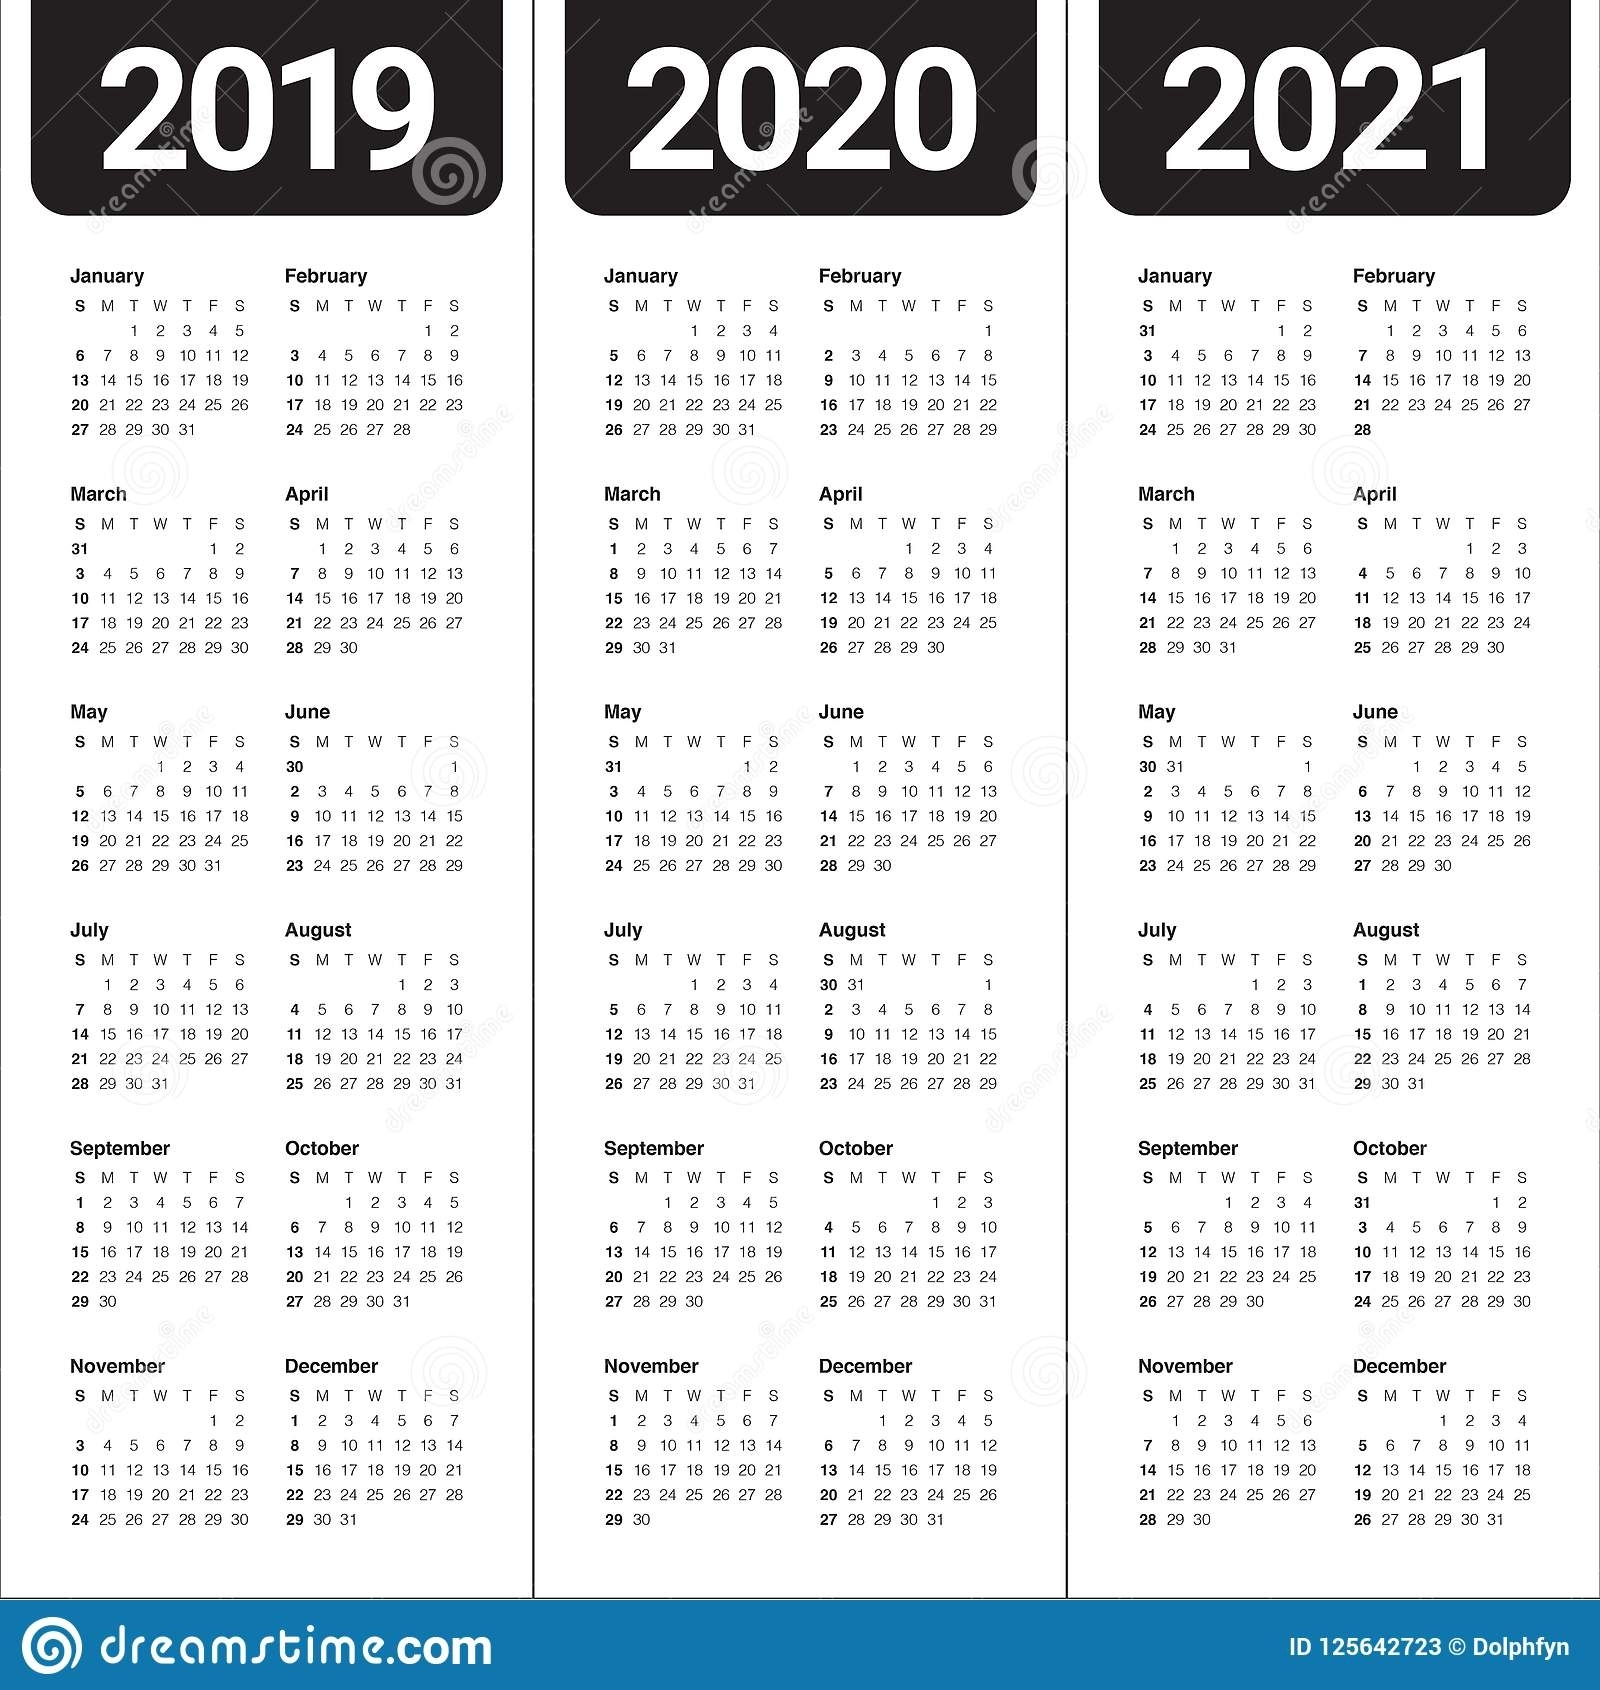 Year 2019 2020 2021 Calendar Vector Design Template Stock Vector with Calendars 2019 2020 2021